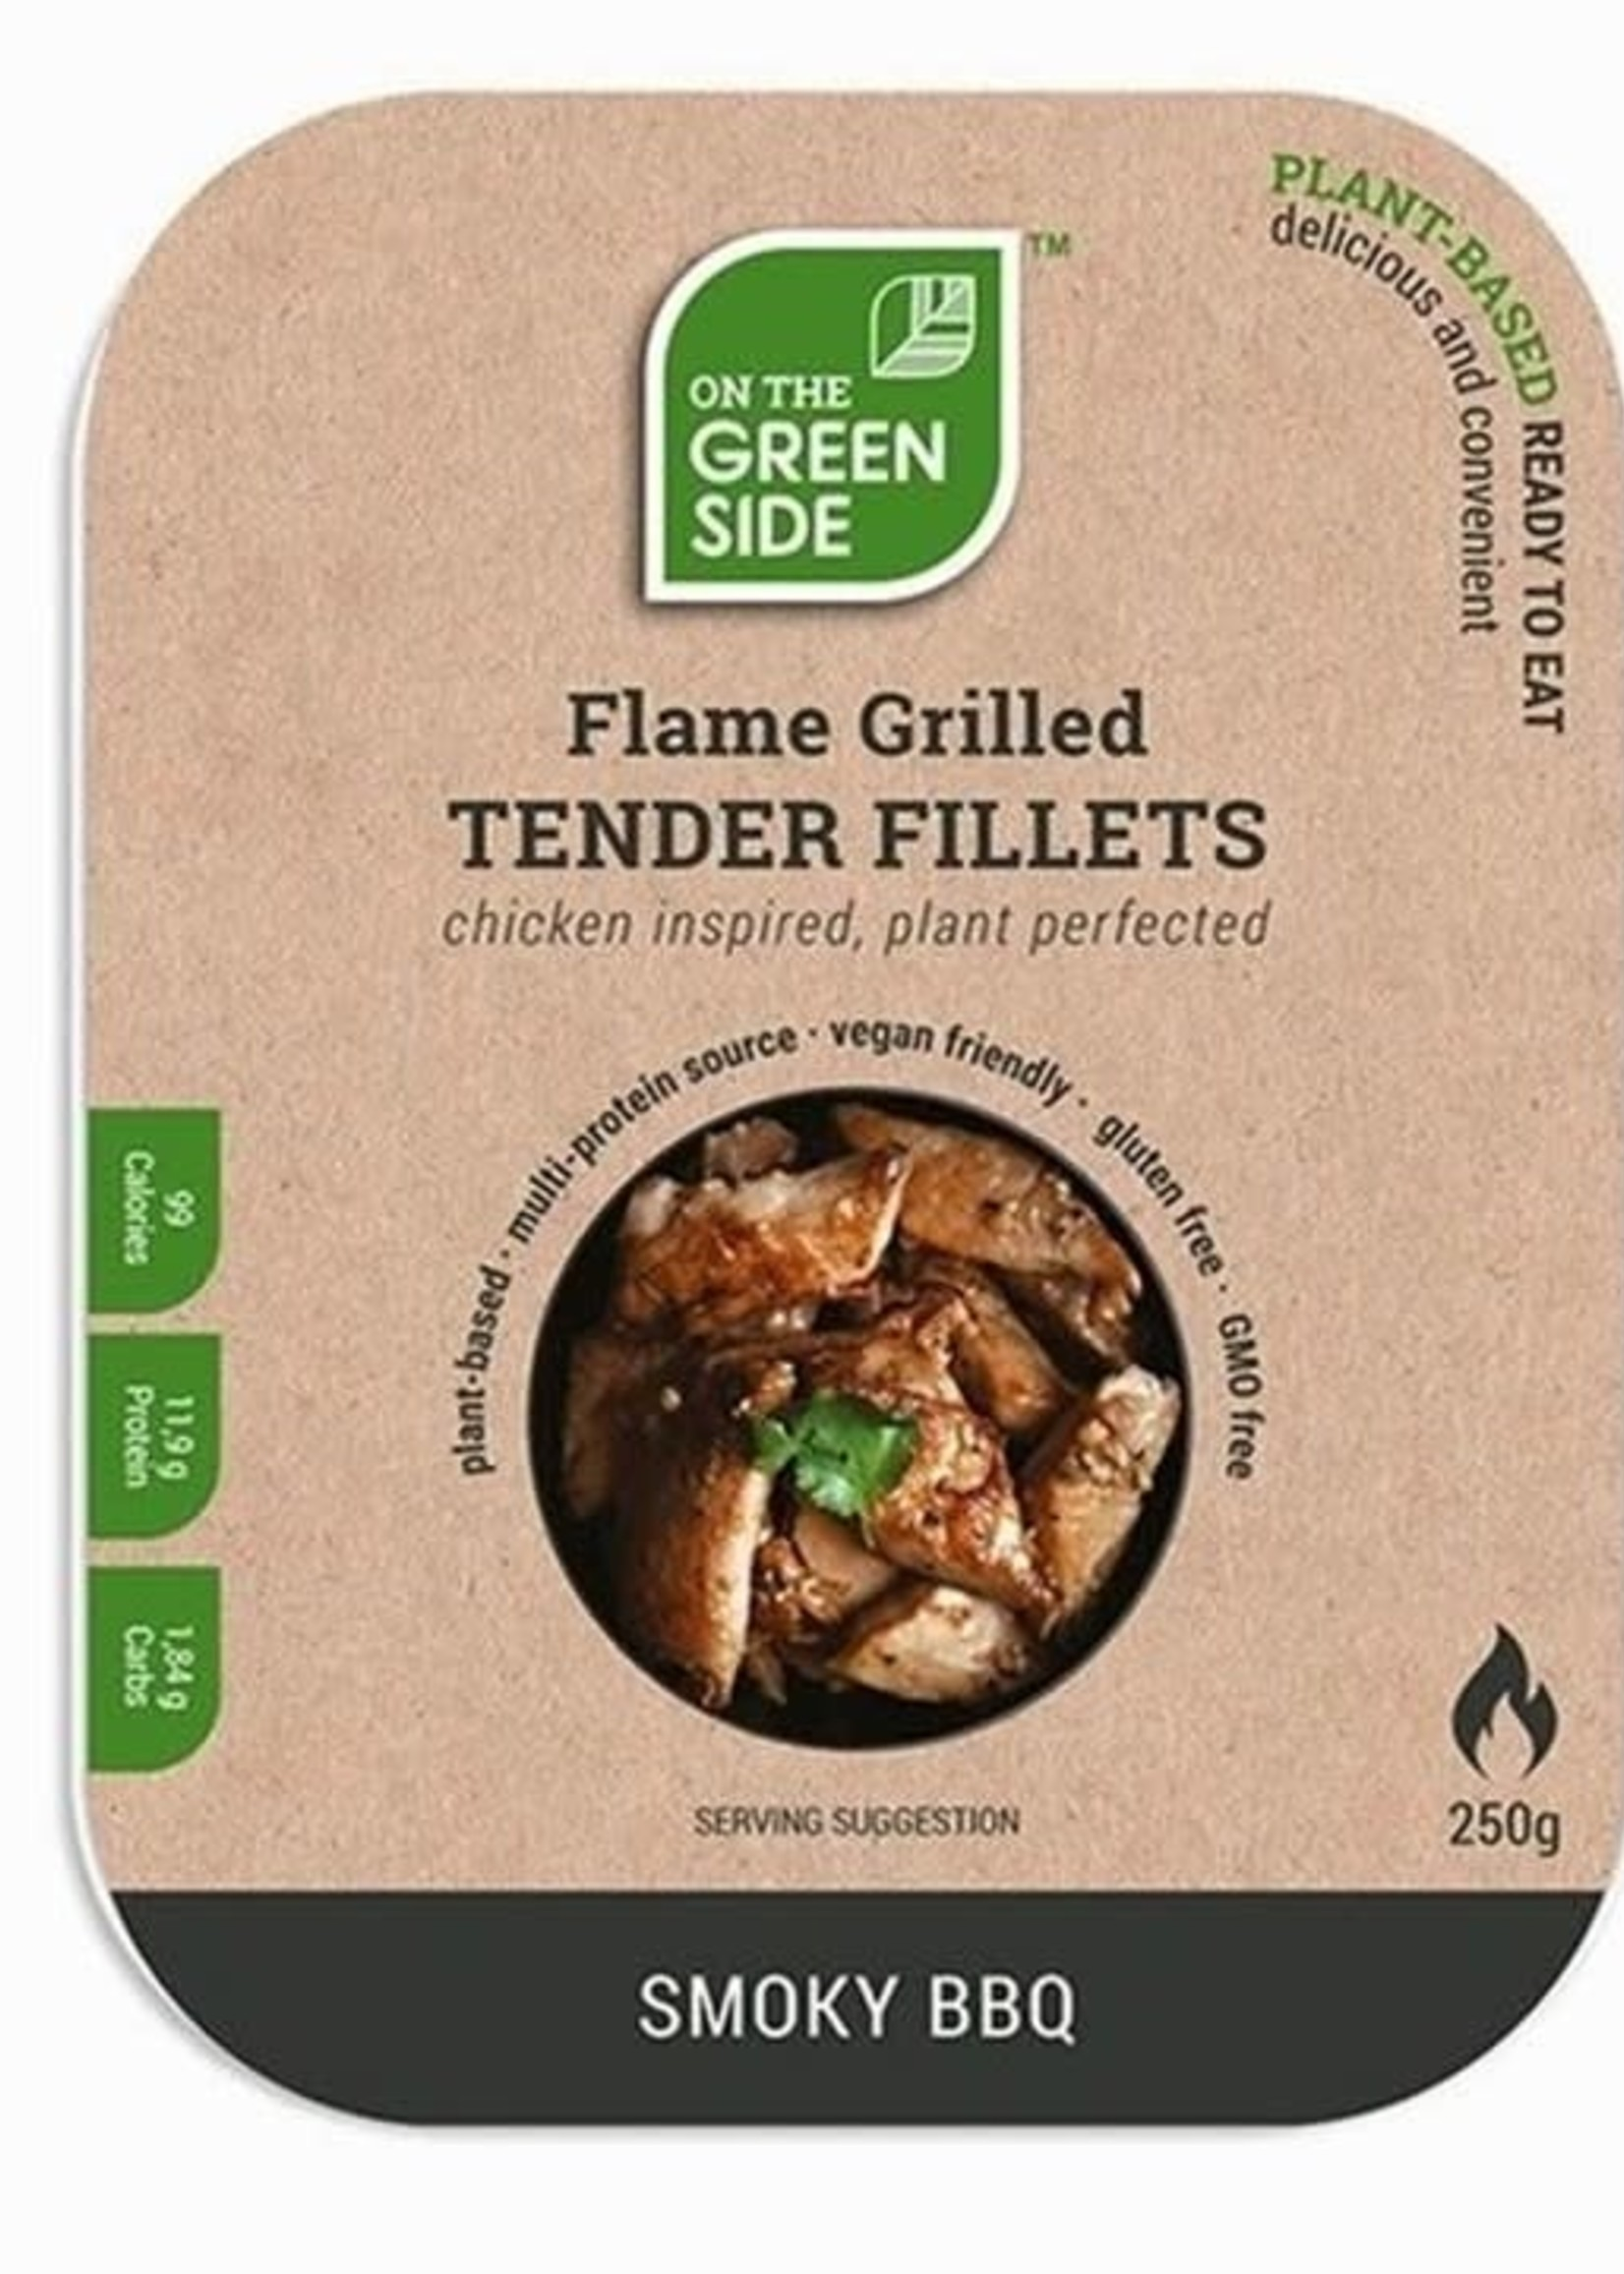 On The Green Side Tender Fillets - smoky BBQ 250g